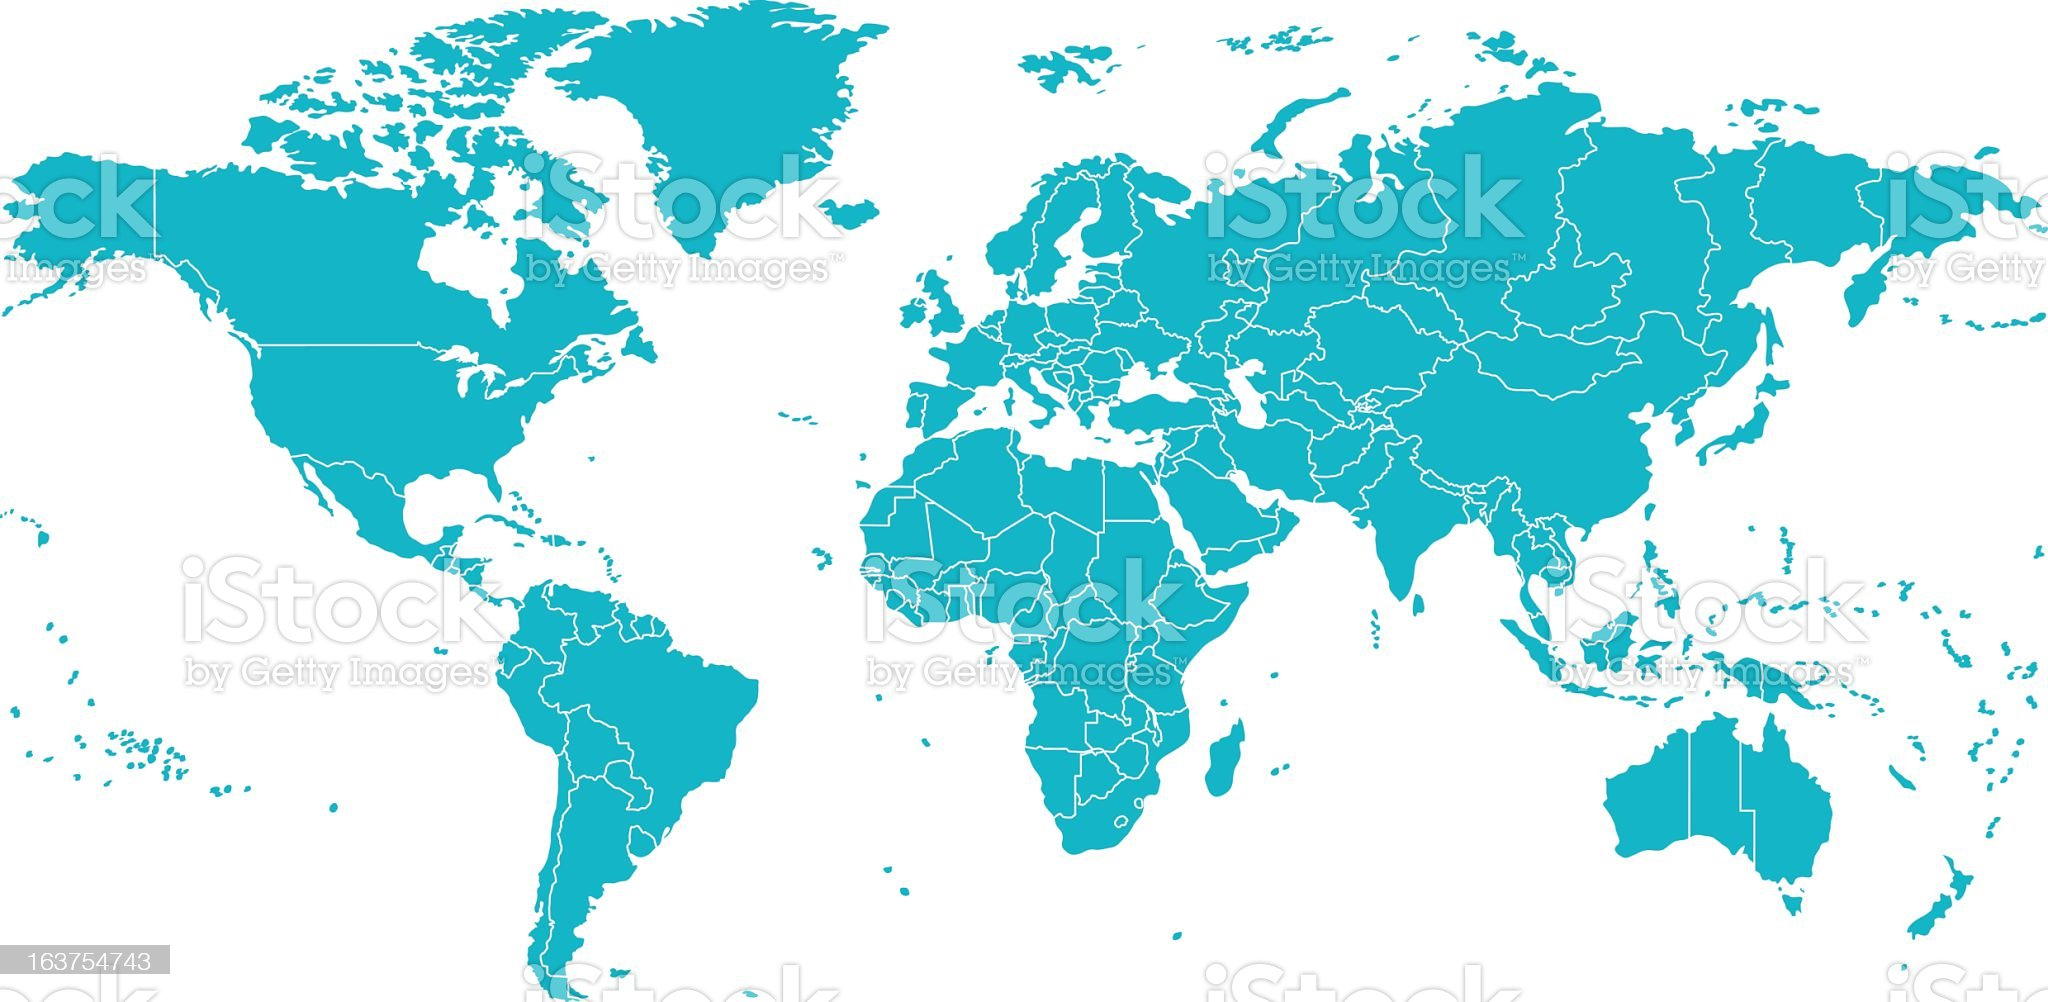 Vector Map Of The World with lines dividing each country. royalty-free stock vector art